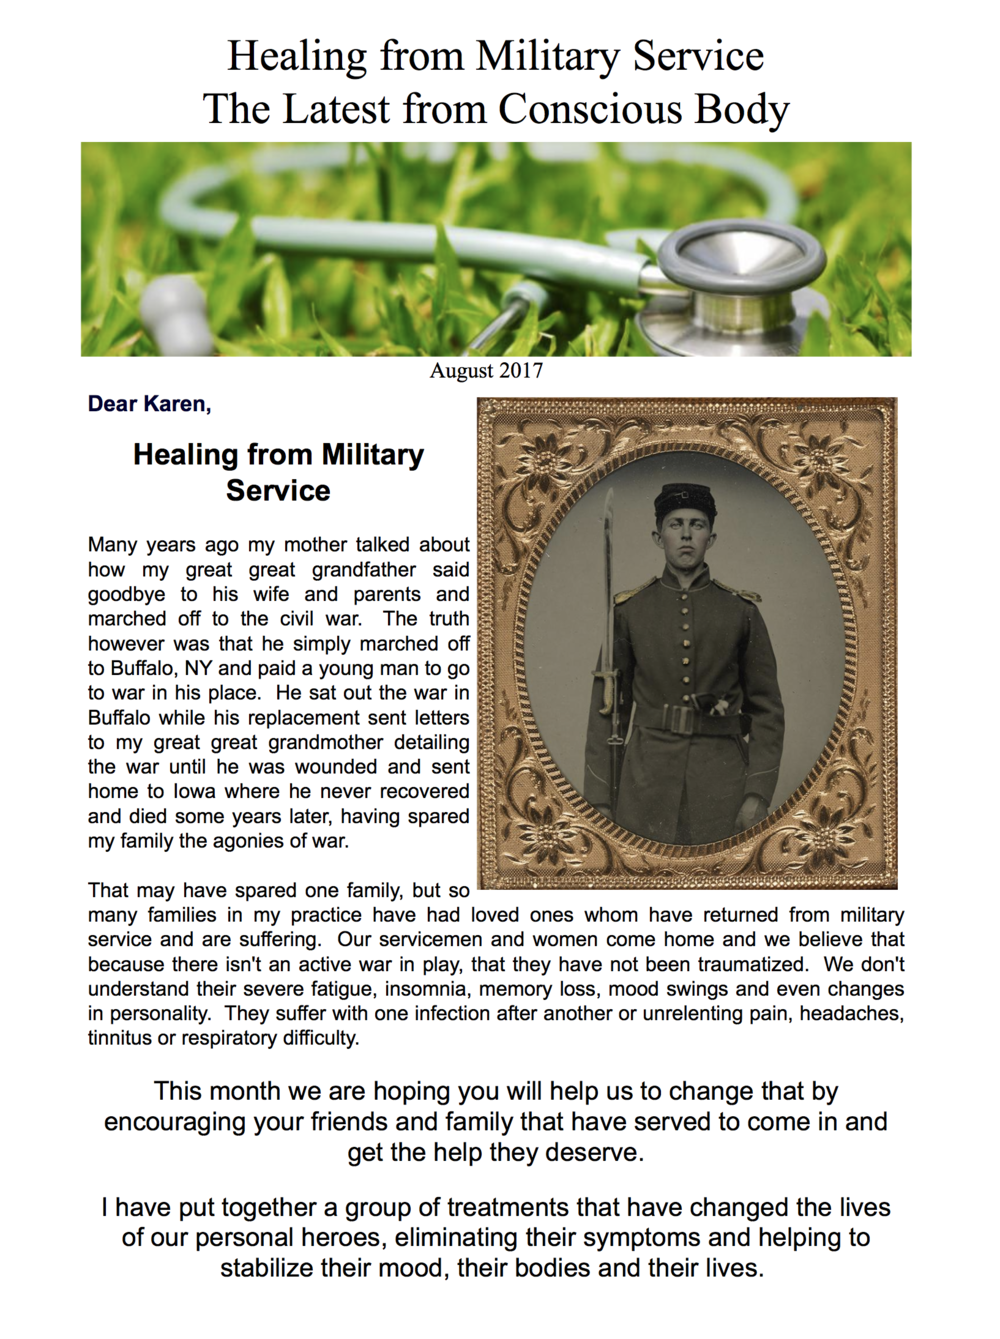 Healing Our Military Newsletter August 2017